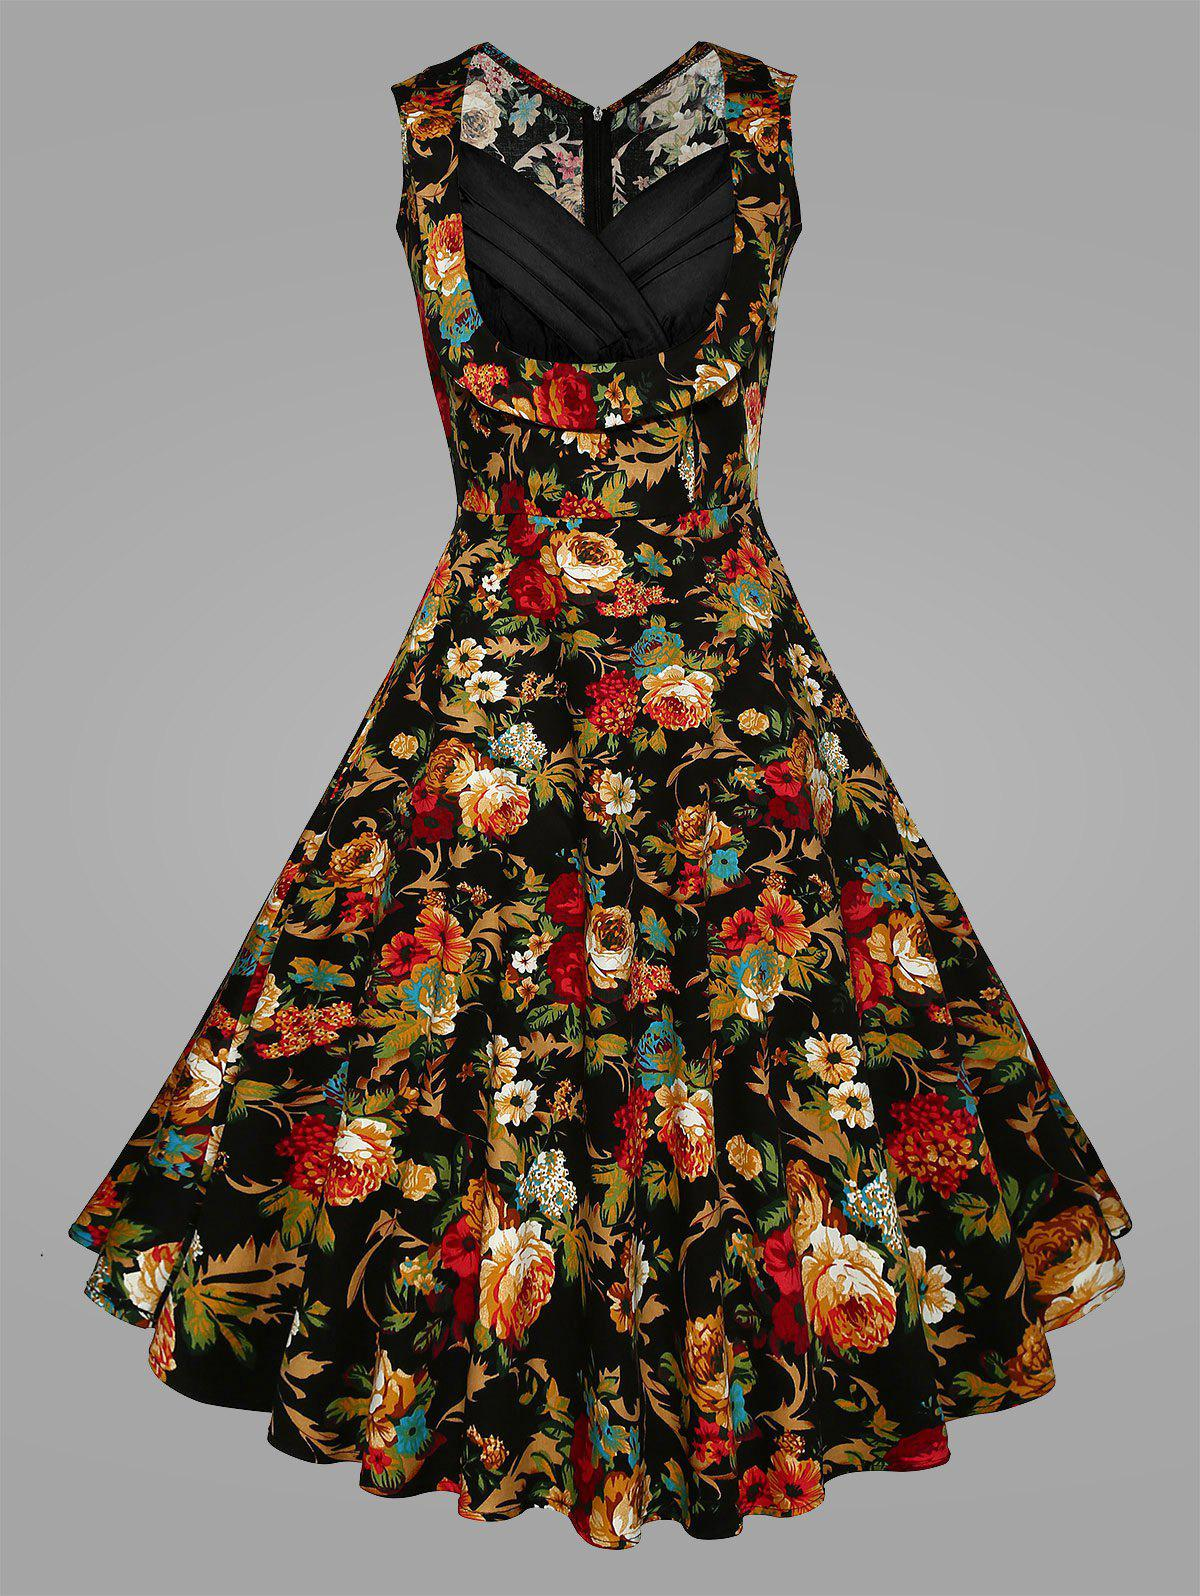 Pleated Plus Size Floral Vintage Swing DressWOMEN<br><br>Size: 5XL; Color: BLACK; Style: Vintage; Material: Cotton Blend,Polyester; Silhouette: Ball Gown; Dresses Length: Mid-Calf; Neckline: Sweetheart Neck; Sleeve Length: Sleeveless; Waist: High Waisted; Embellishment: Pleated,Ruched,Vintage; Pattern Type: Floral,Print; With Belt: No; Season: Spring,Summer; Weight: 0.3100kg; Package Contents: 1 x Dress;